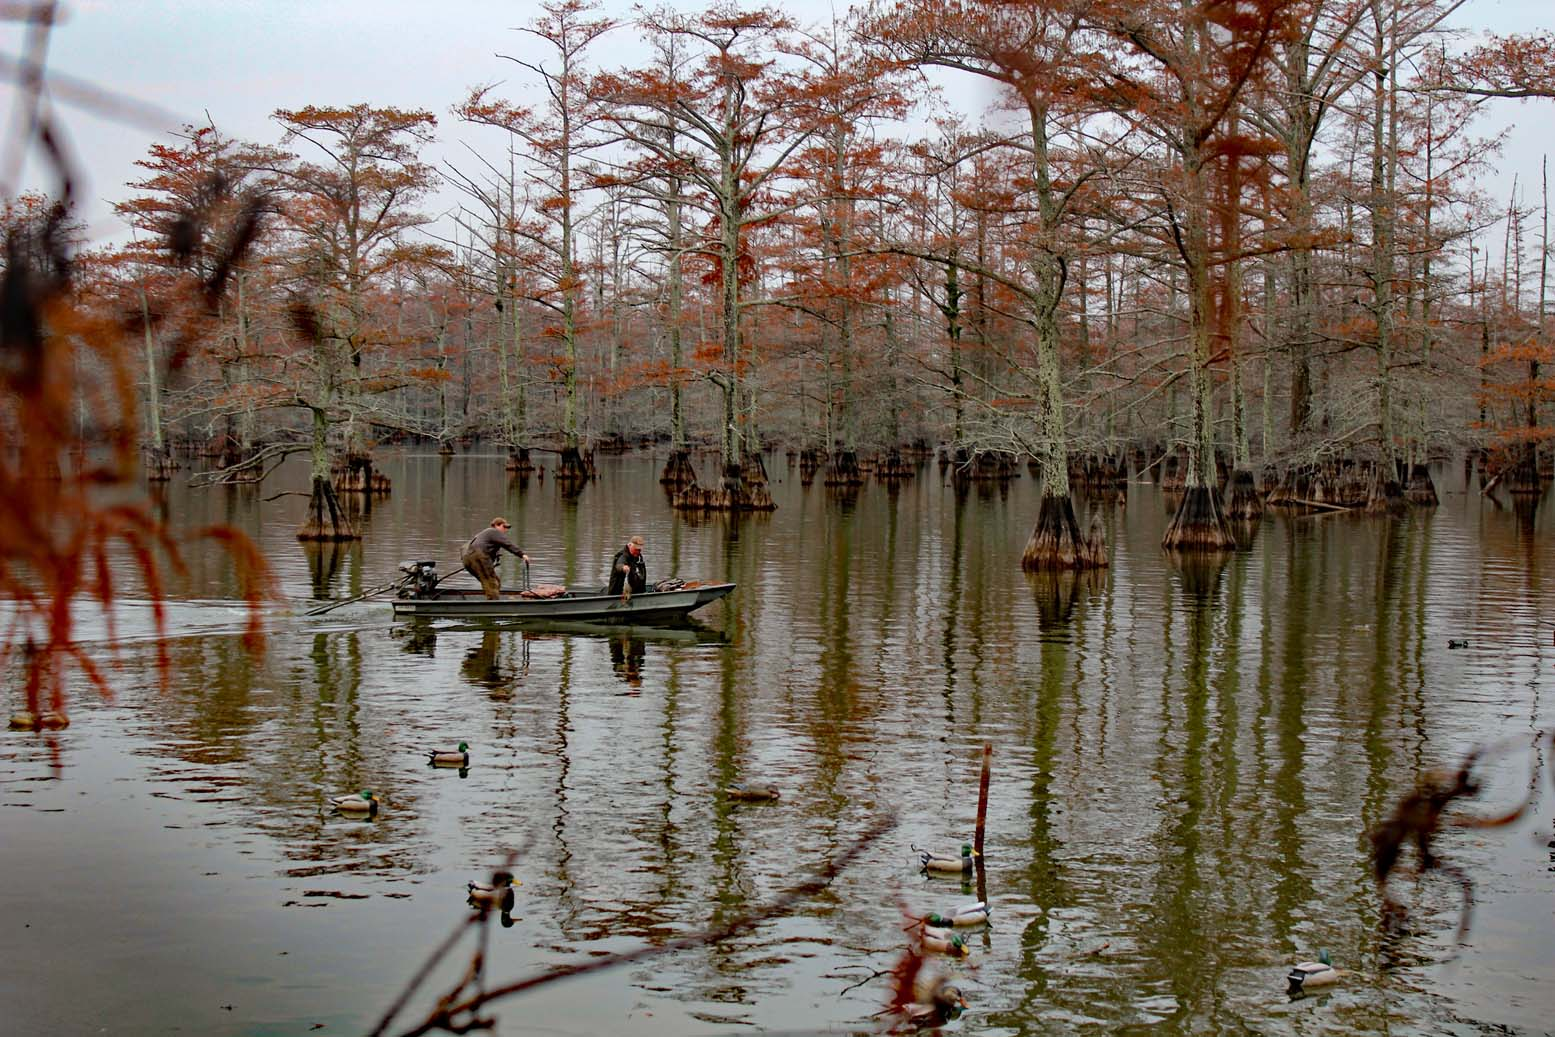 Oxbow lakes in the MAV provide outstanding recreation opportunities